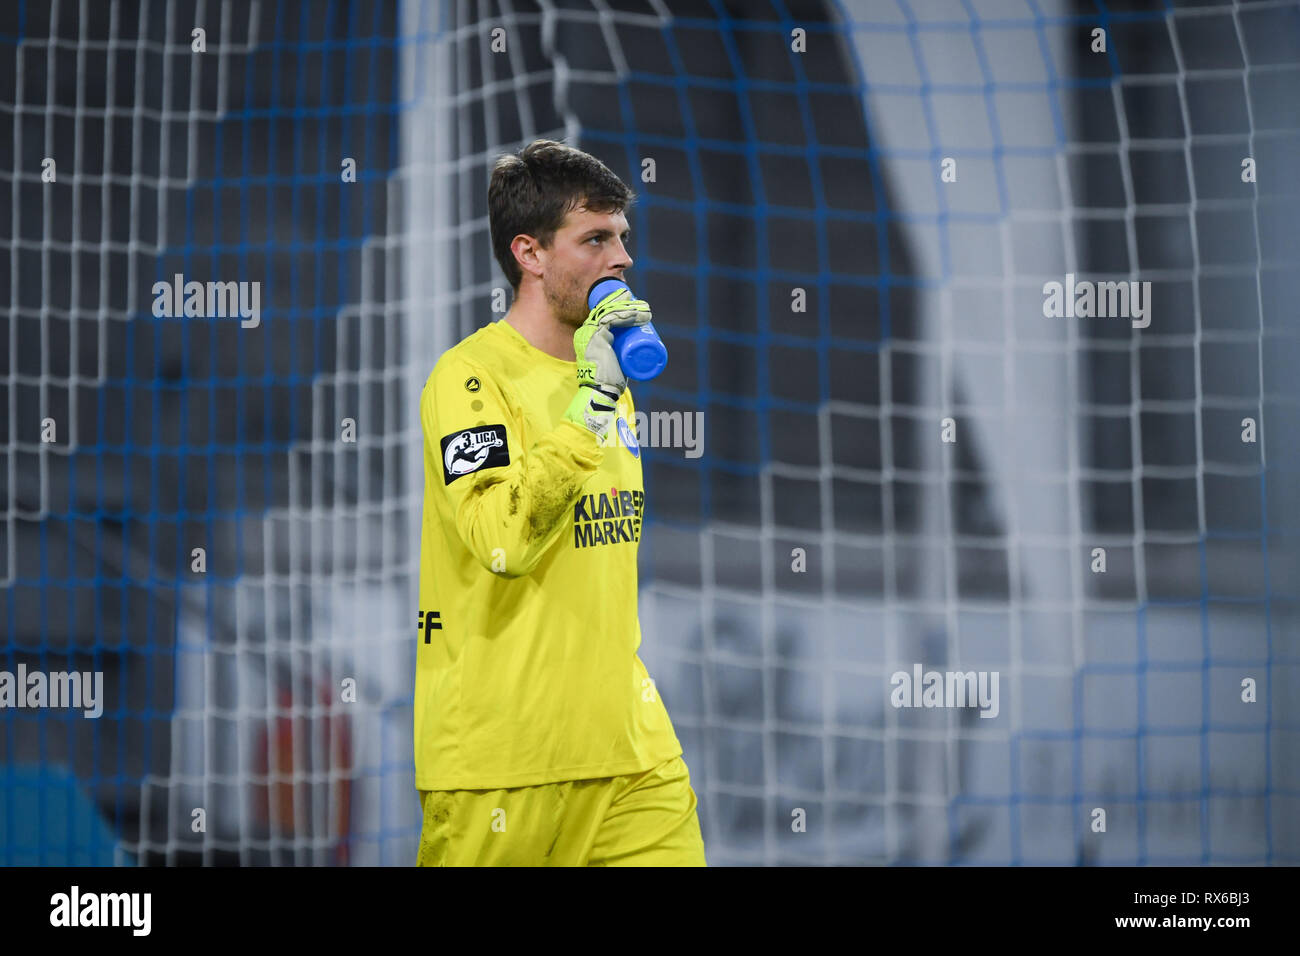 Duisburg, Deutschland. 08th Mar, 2019. goalkeeper Benjamin Uphoff (KSC) disappointed about the 1: 2. GES/football/3rd league: Krefelder football club Uerdingen - Karlsruher SC, 08.03.2019 Football/Soccer: 3rd League: KFC Uerdingen vs Karlsruher SC, Duisburg, March 8, 2019 | usage worldwide Credit: dpa/Alamy Live News - Stock Image